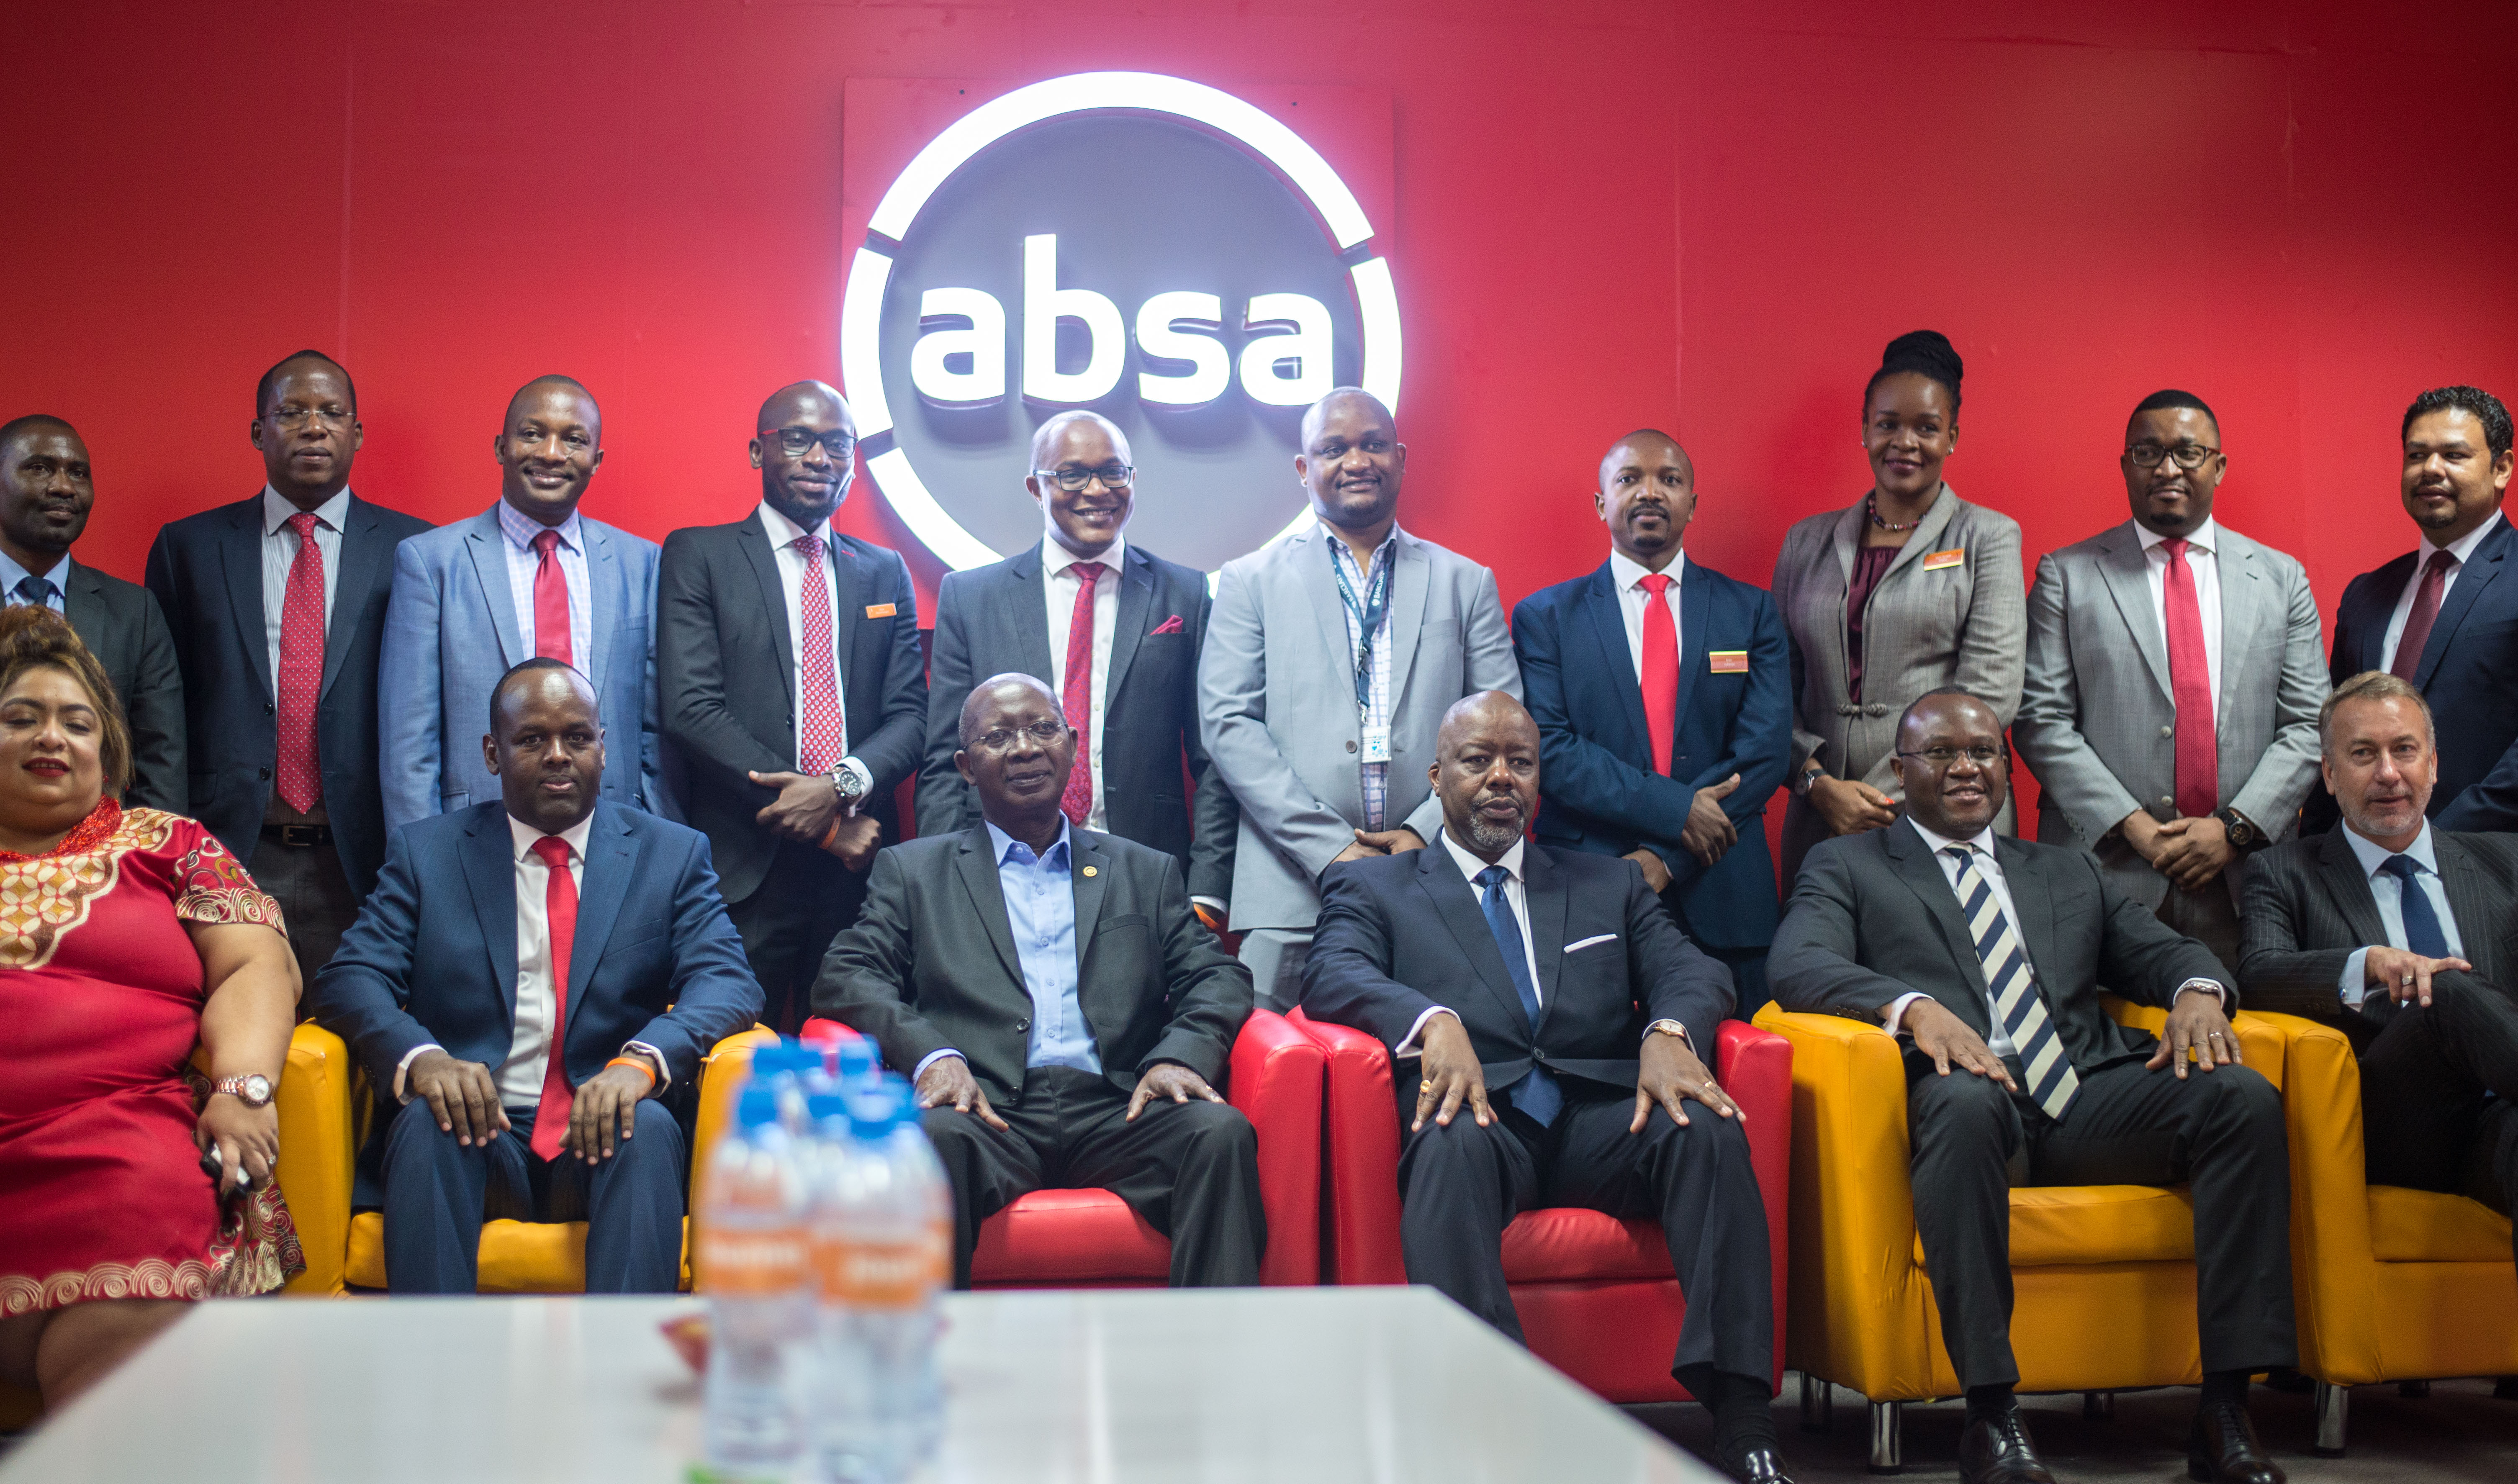 Journey To ABSA – Barclays Bank Tanzania